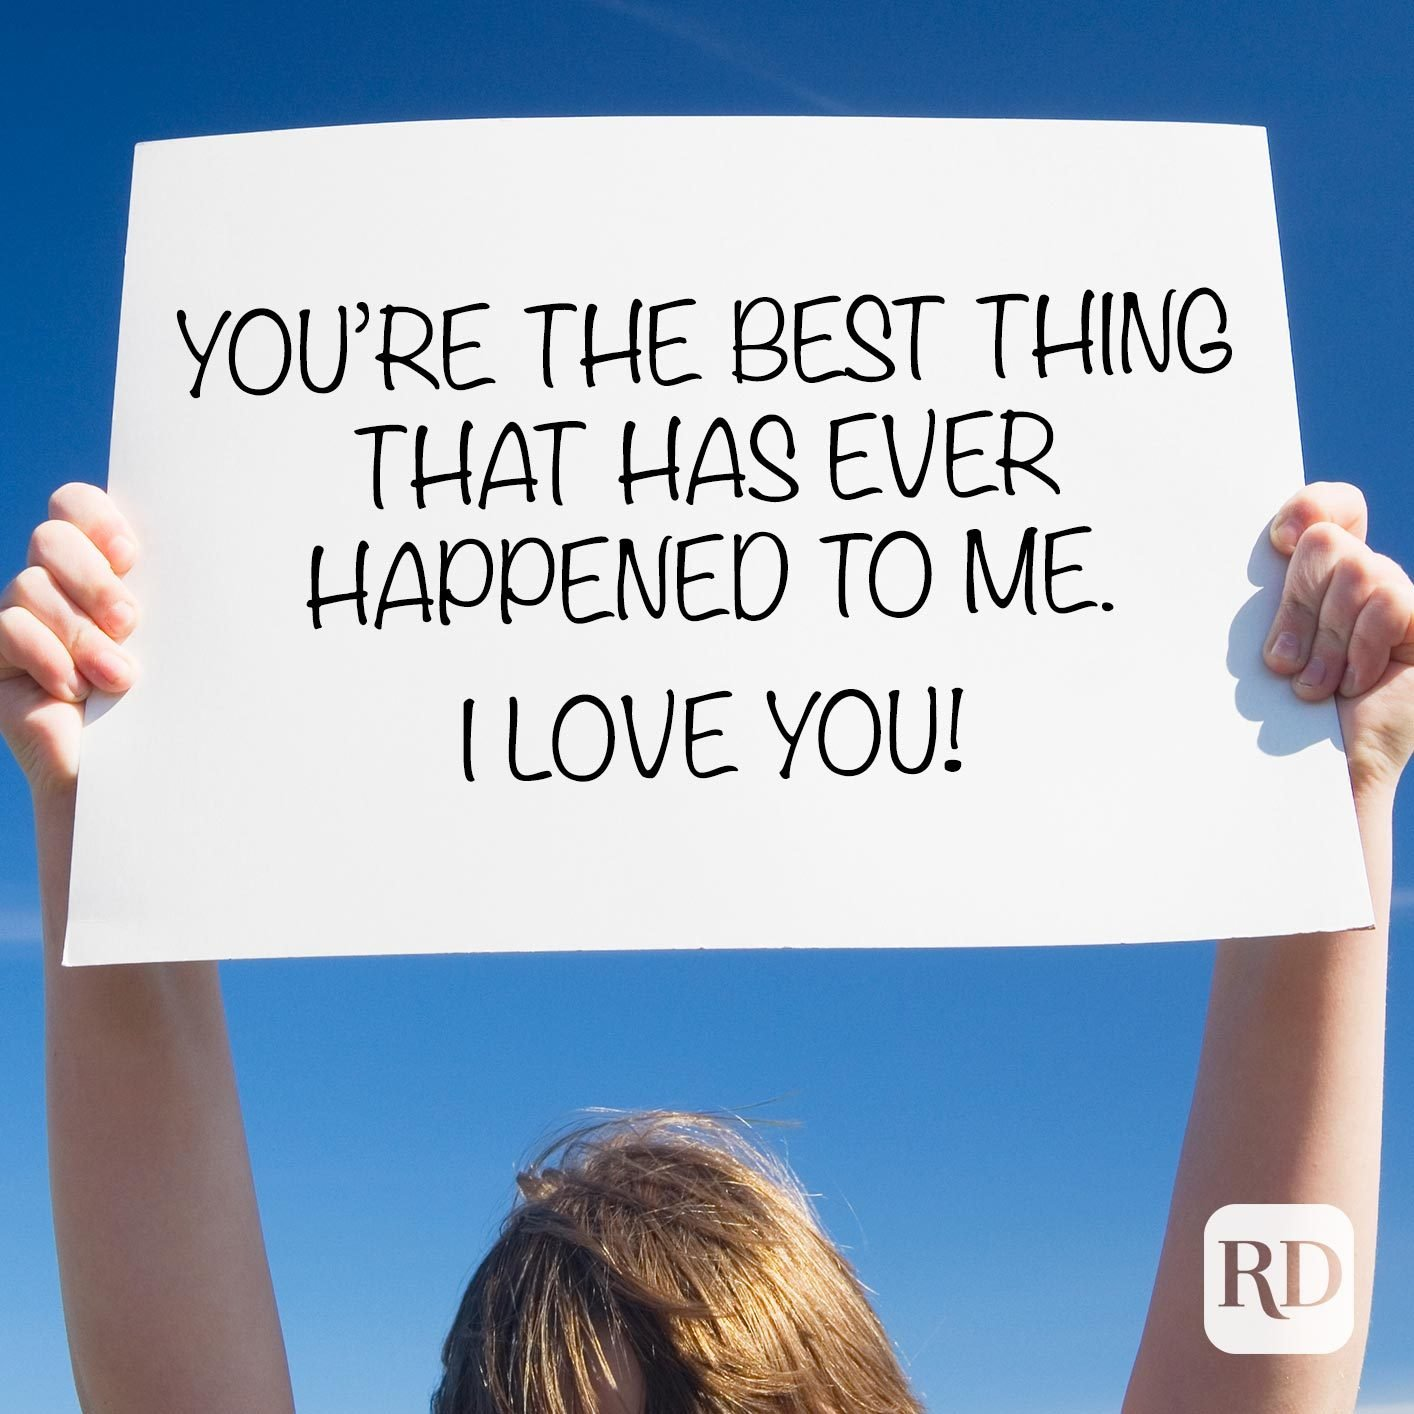 Person holding up sign. Meme text: You're the best thing that has ever happened to me. I love you!